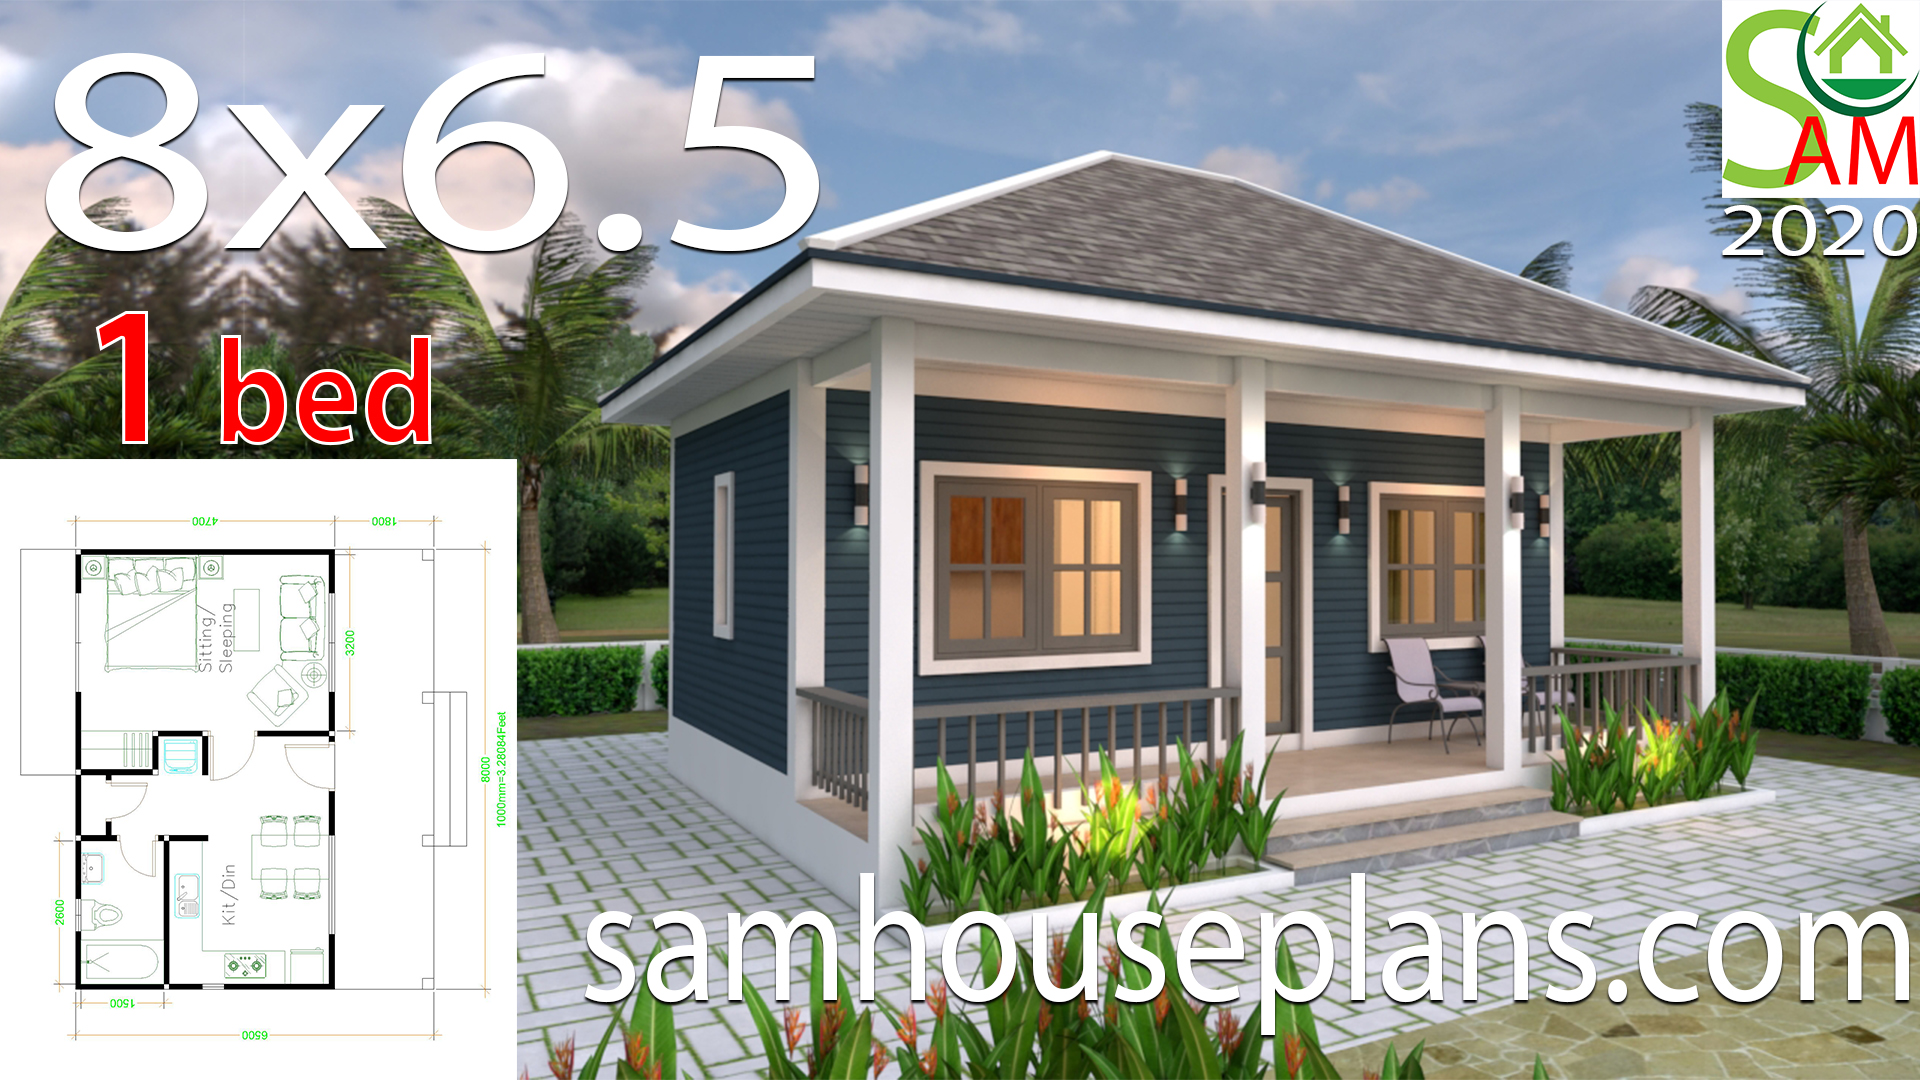 House Plans 8x6 5 With One Bedrooms Hip Roof Samhouseplans